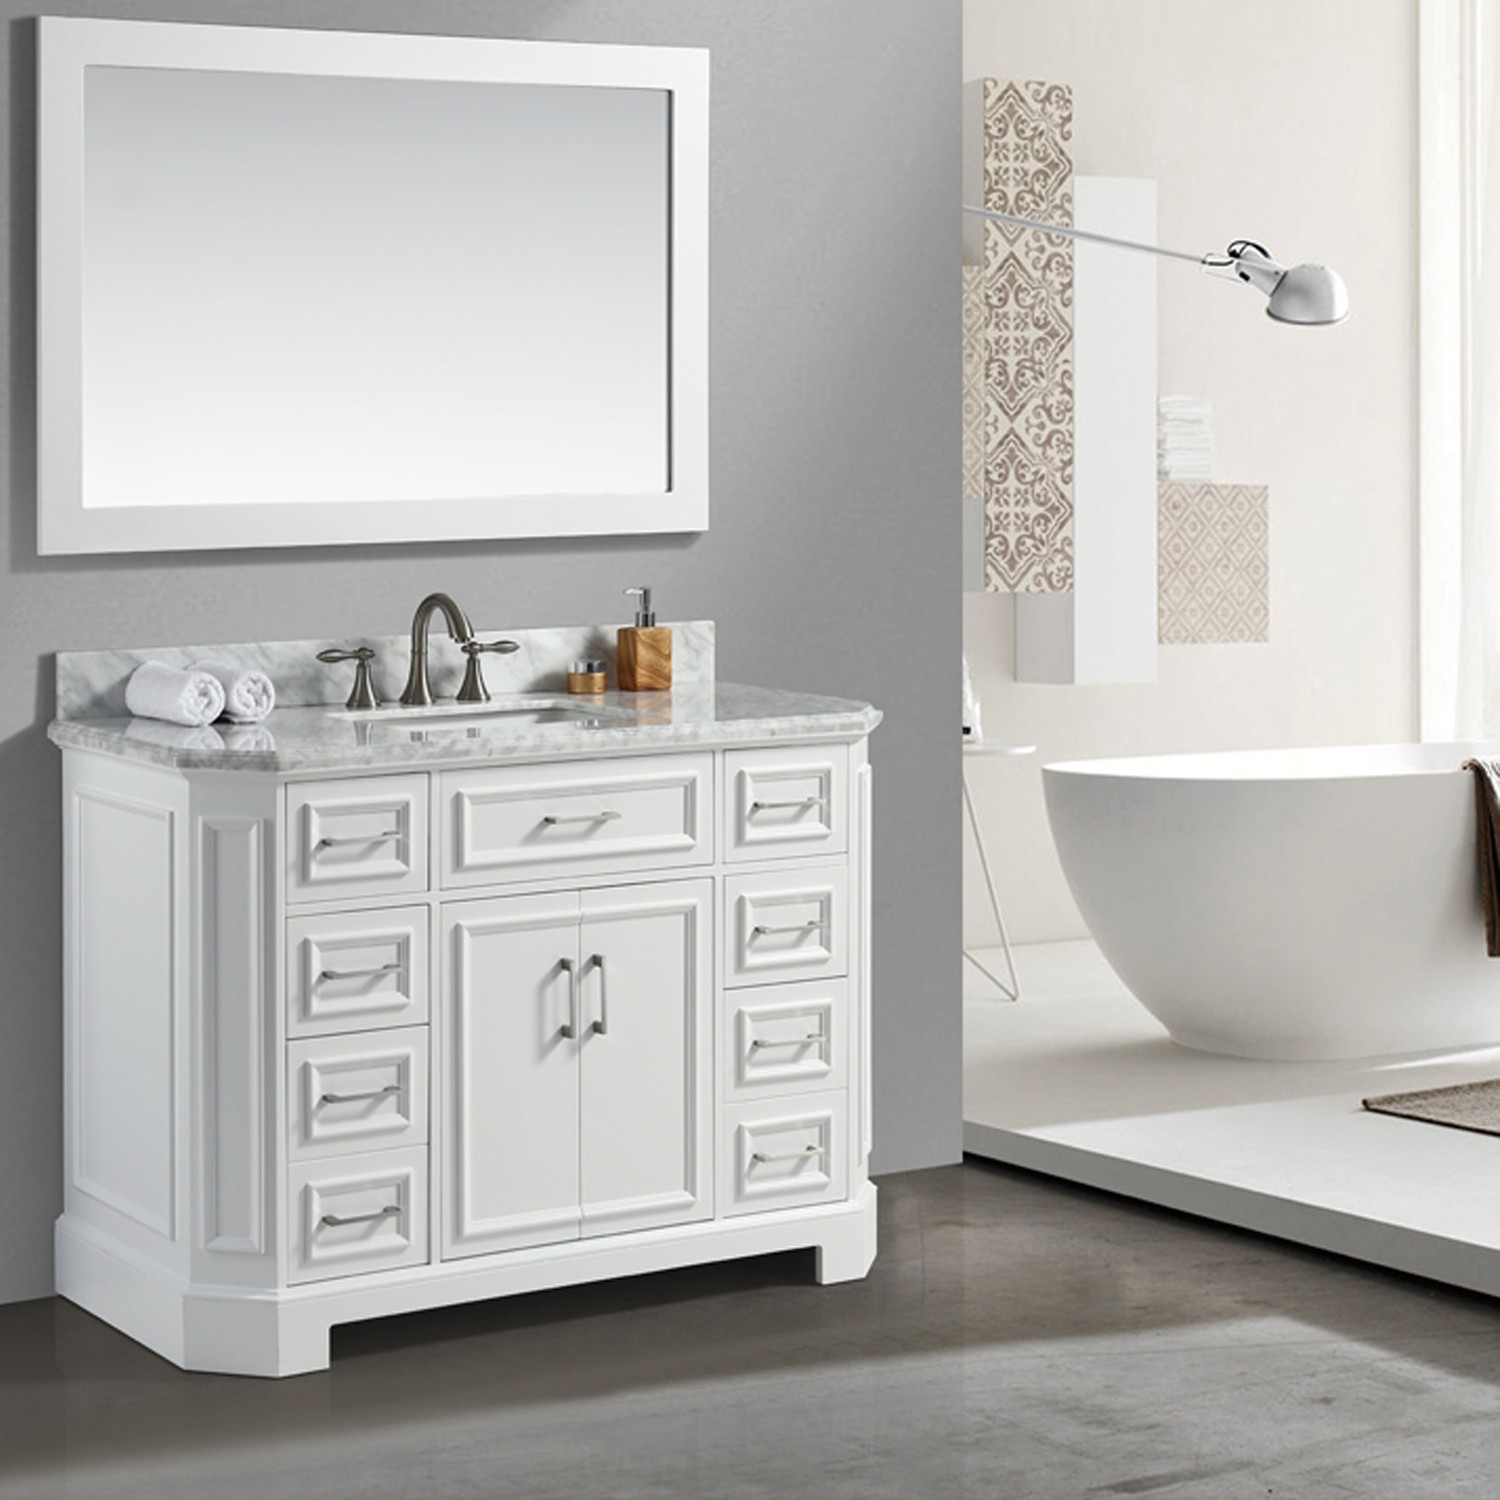 Eviva Glory 48 White Bathroom Vanity With Carrara Marble Counter Top And Porcelain Sink Decors Us